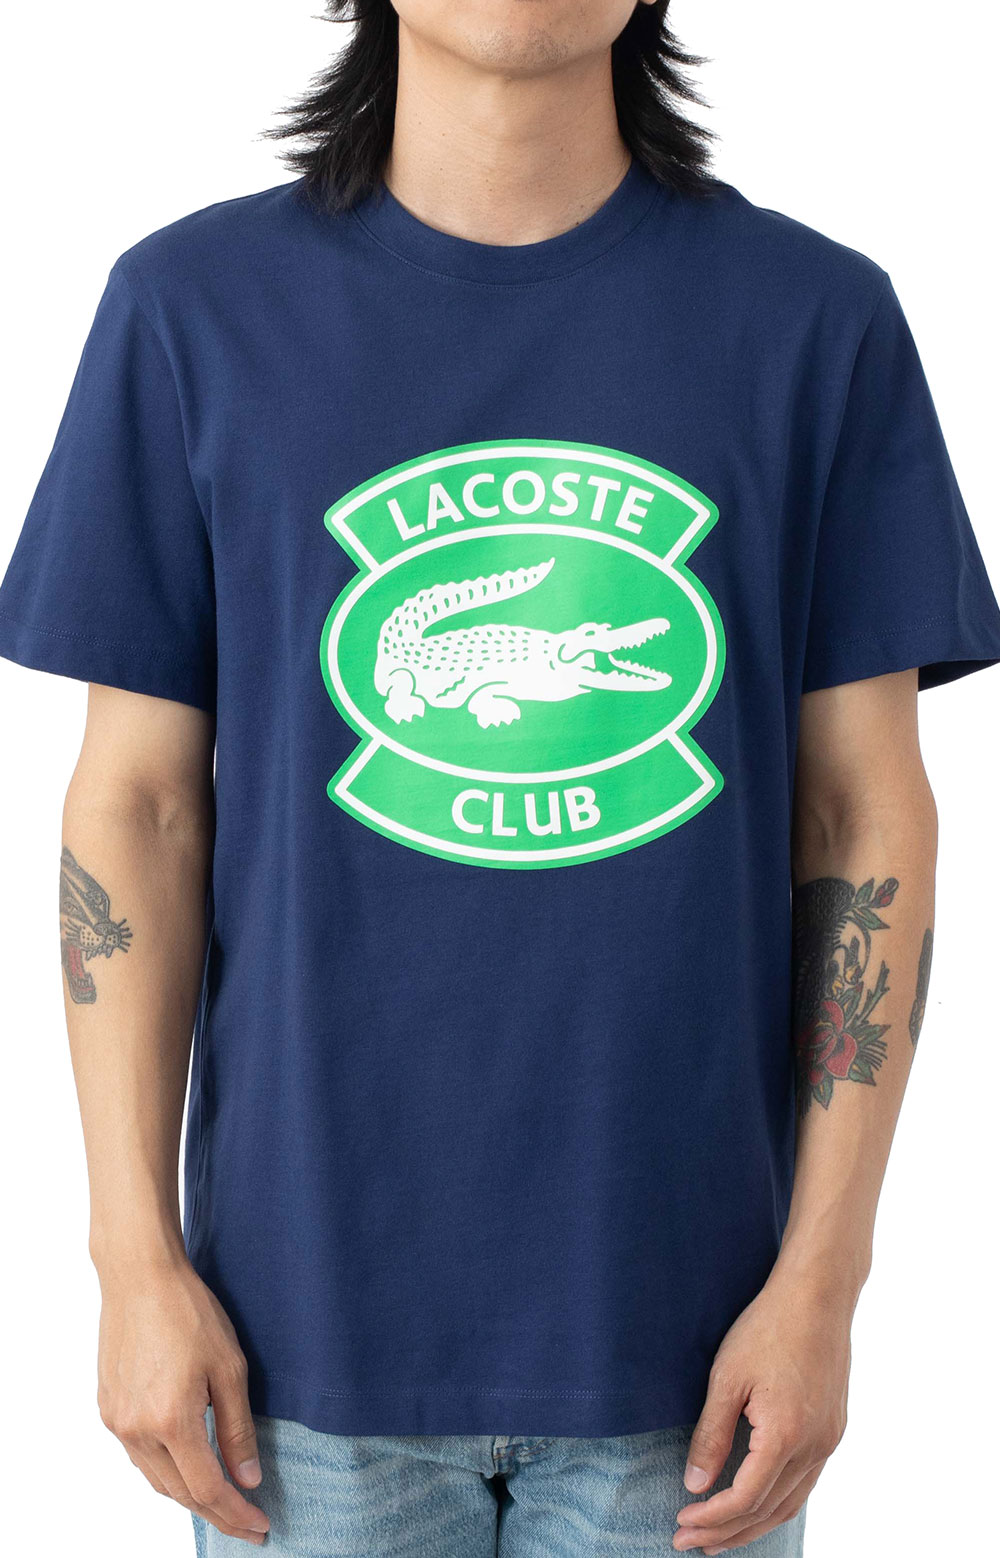 Oversized Lacoste Club Badge Cotton T-Shirt - Navy